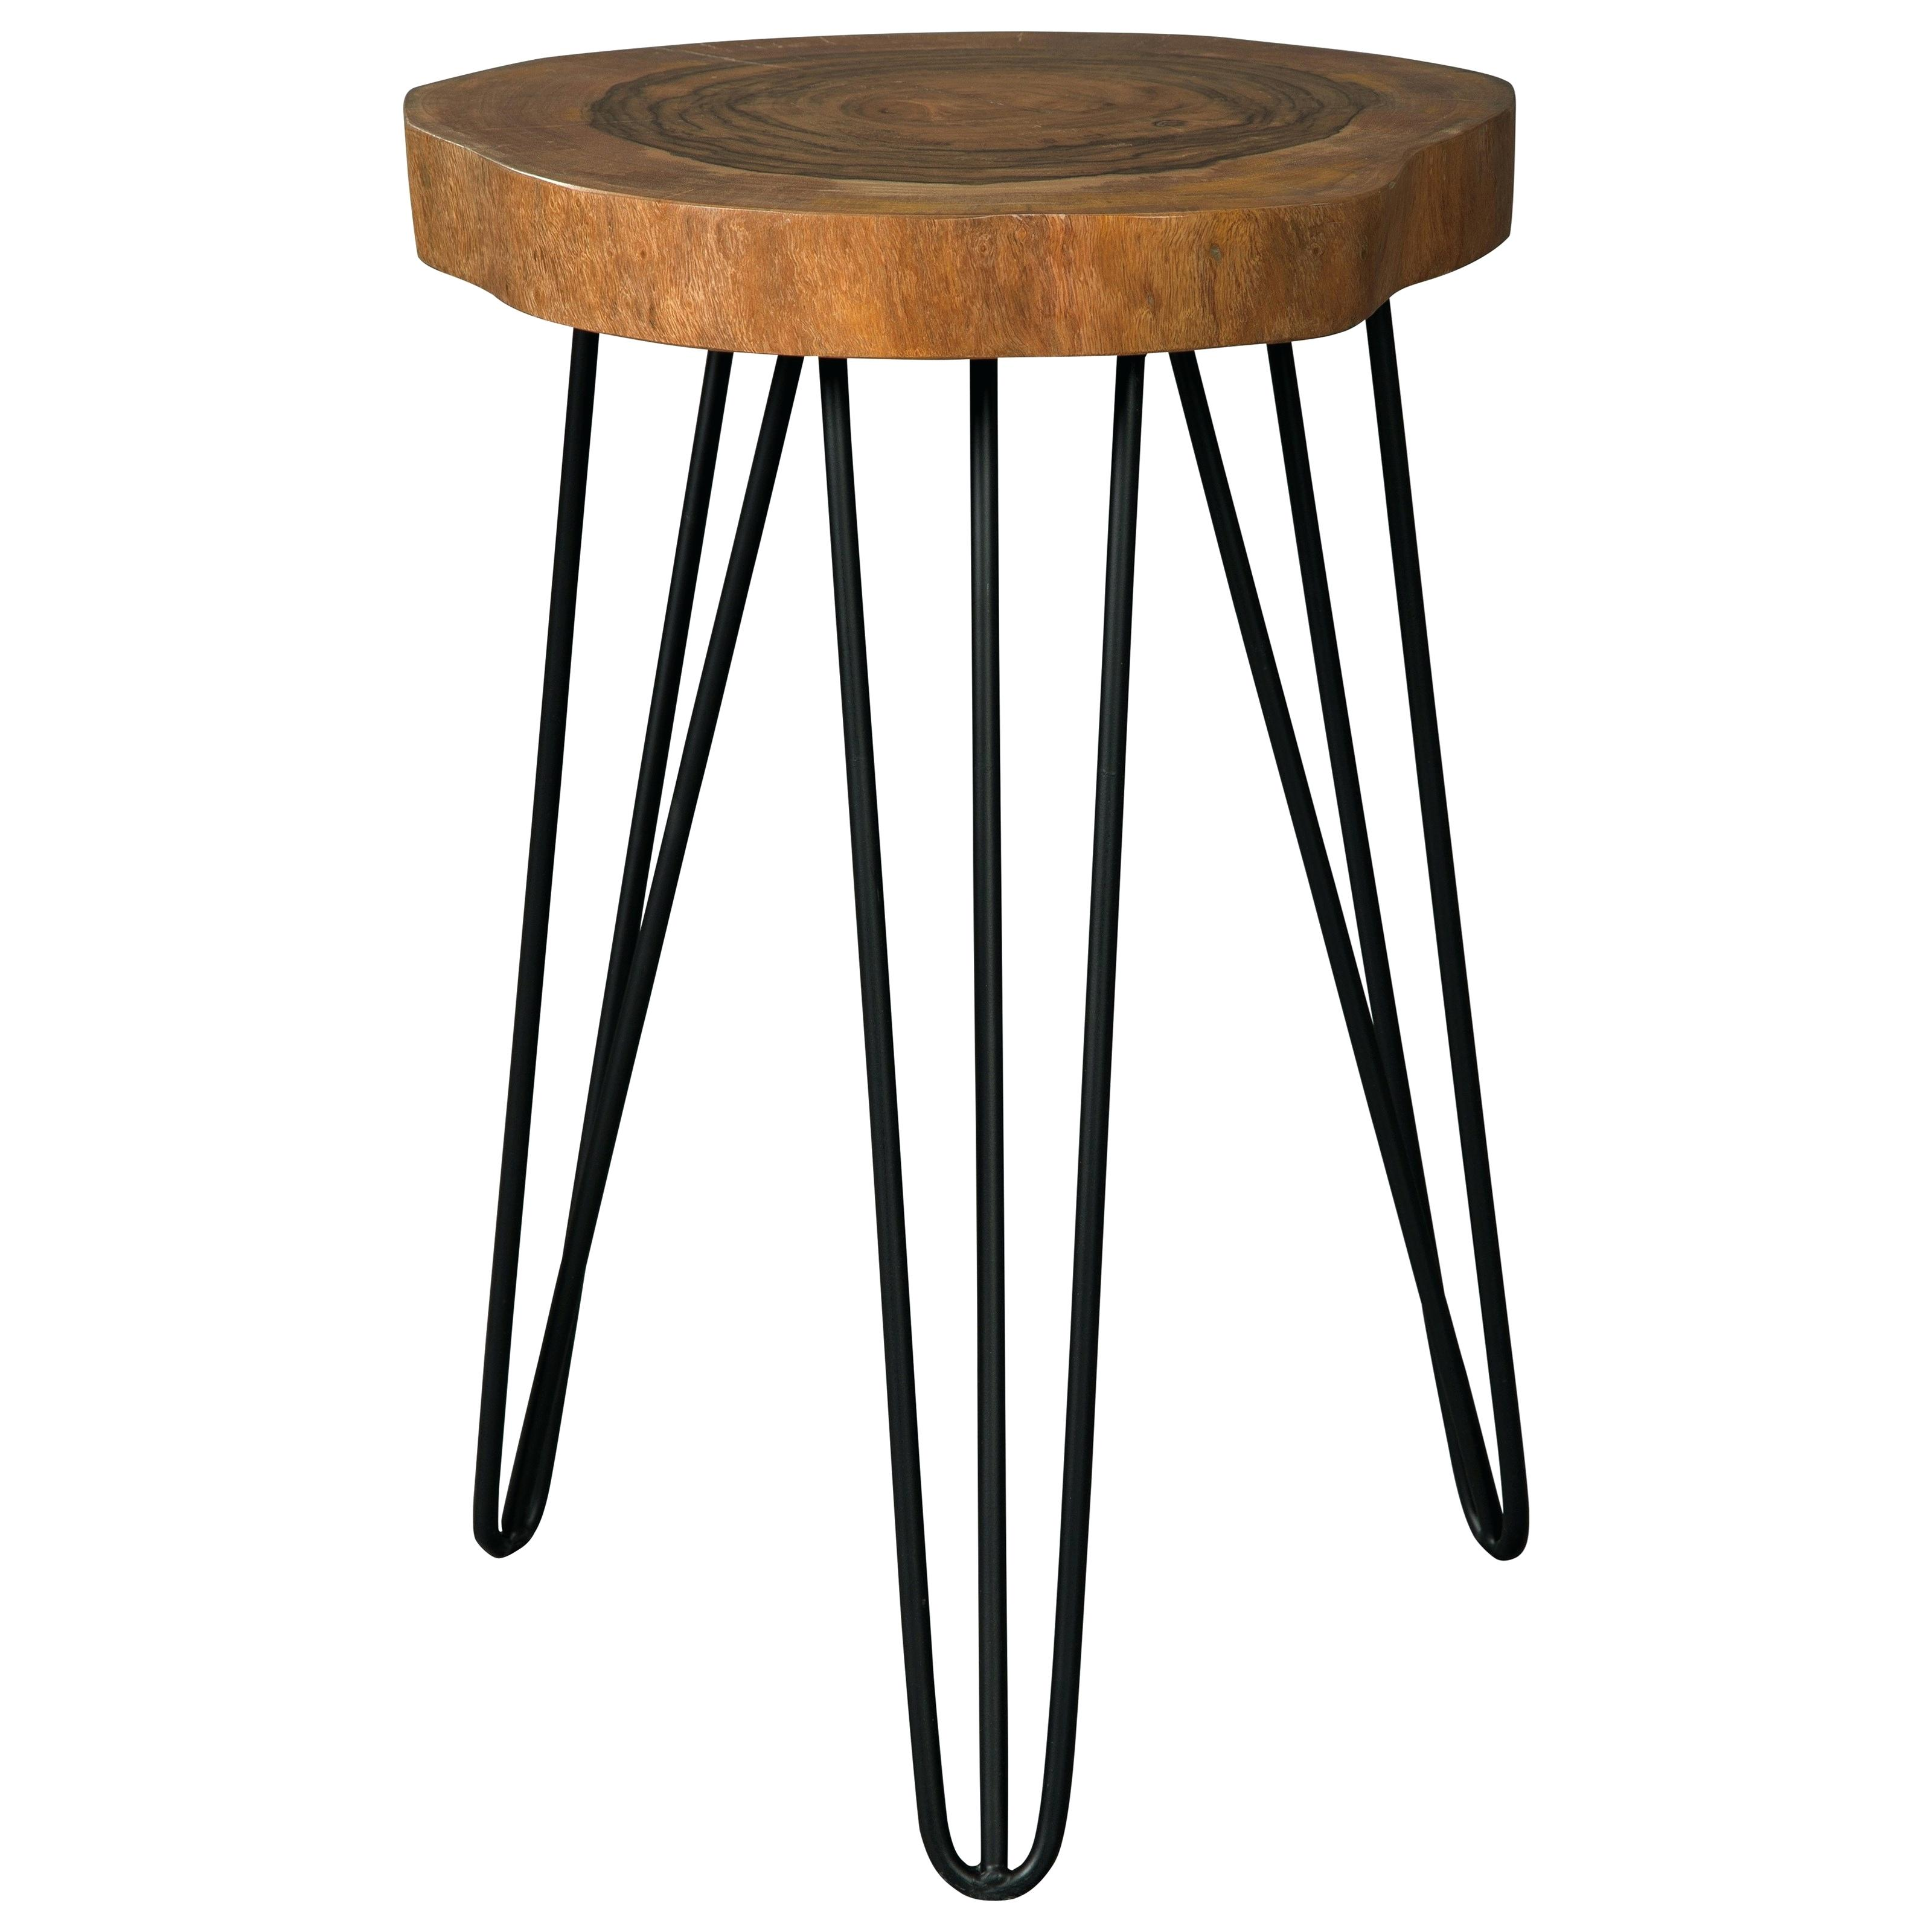 wood accent table zoom mango signature design solid with hairpin legs unfinished round modern side lamp decorative media cabinet west elm couch contemporary cocktail navy bedside